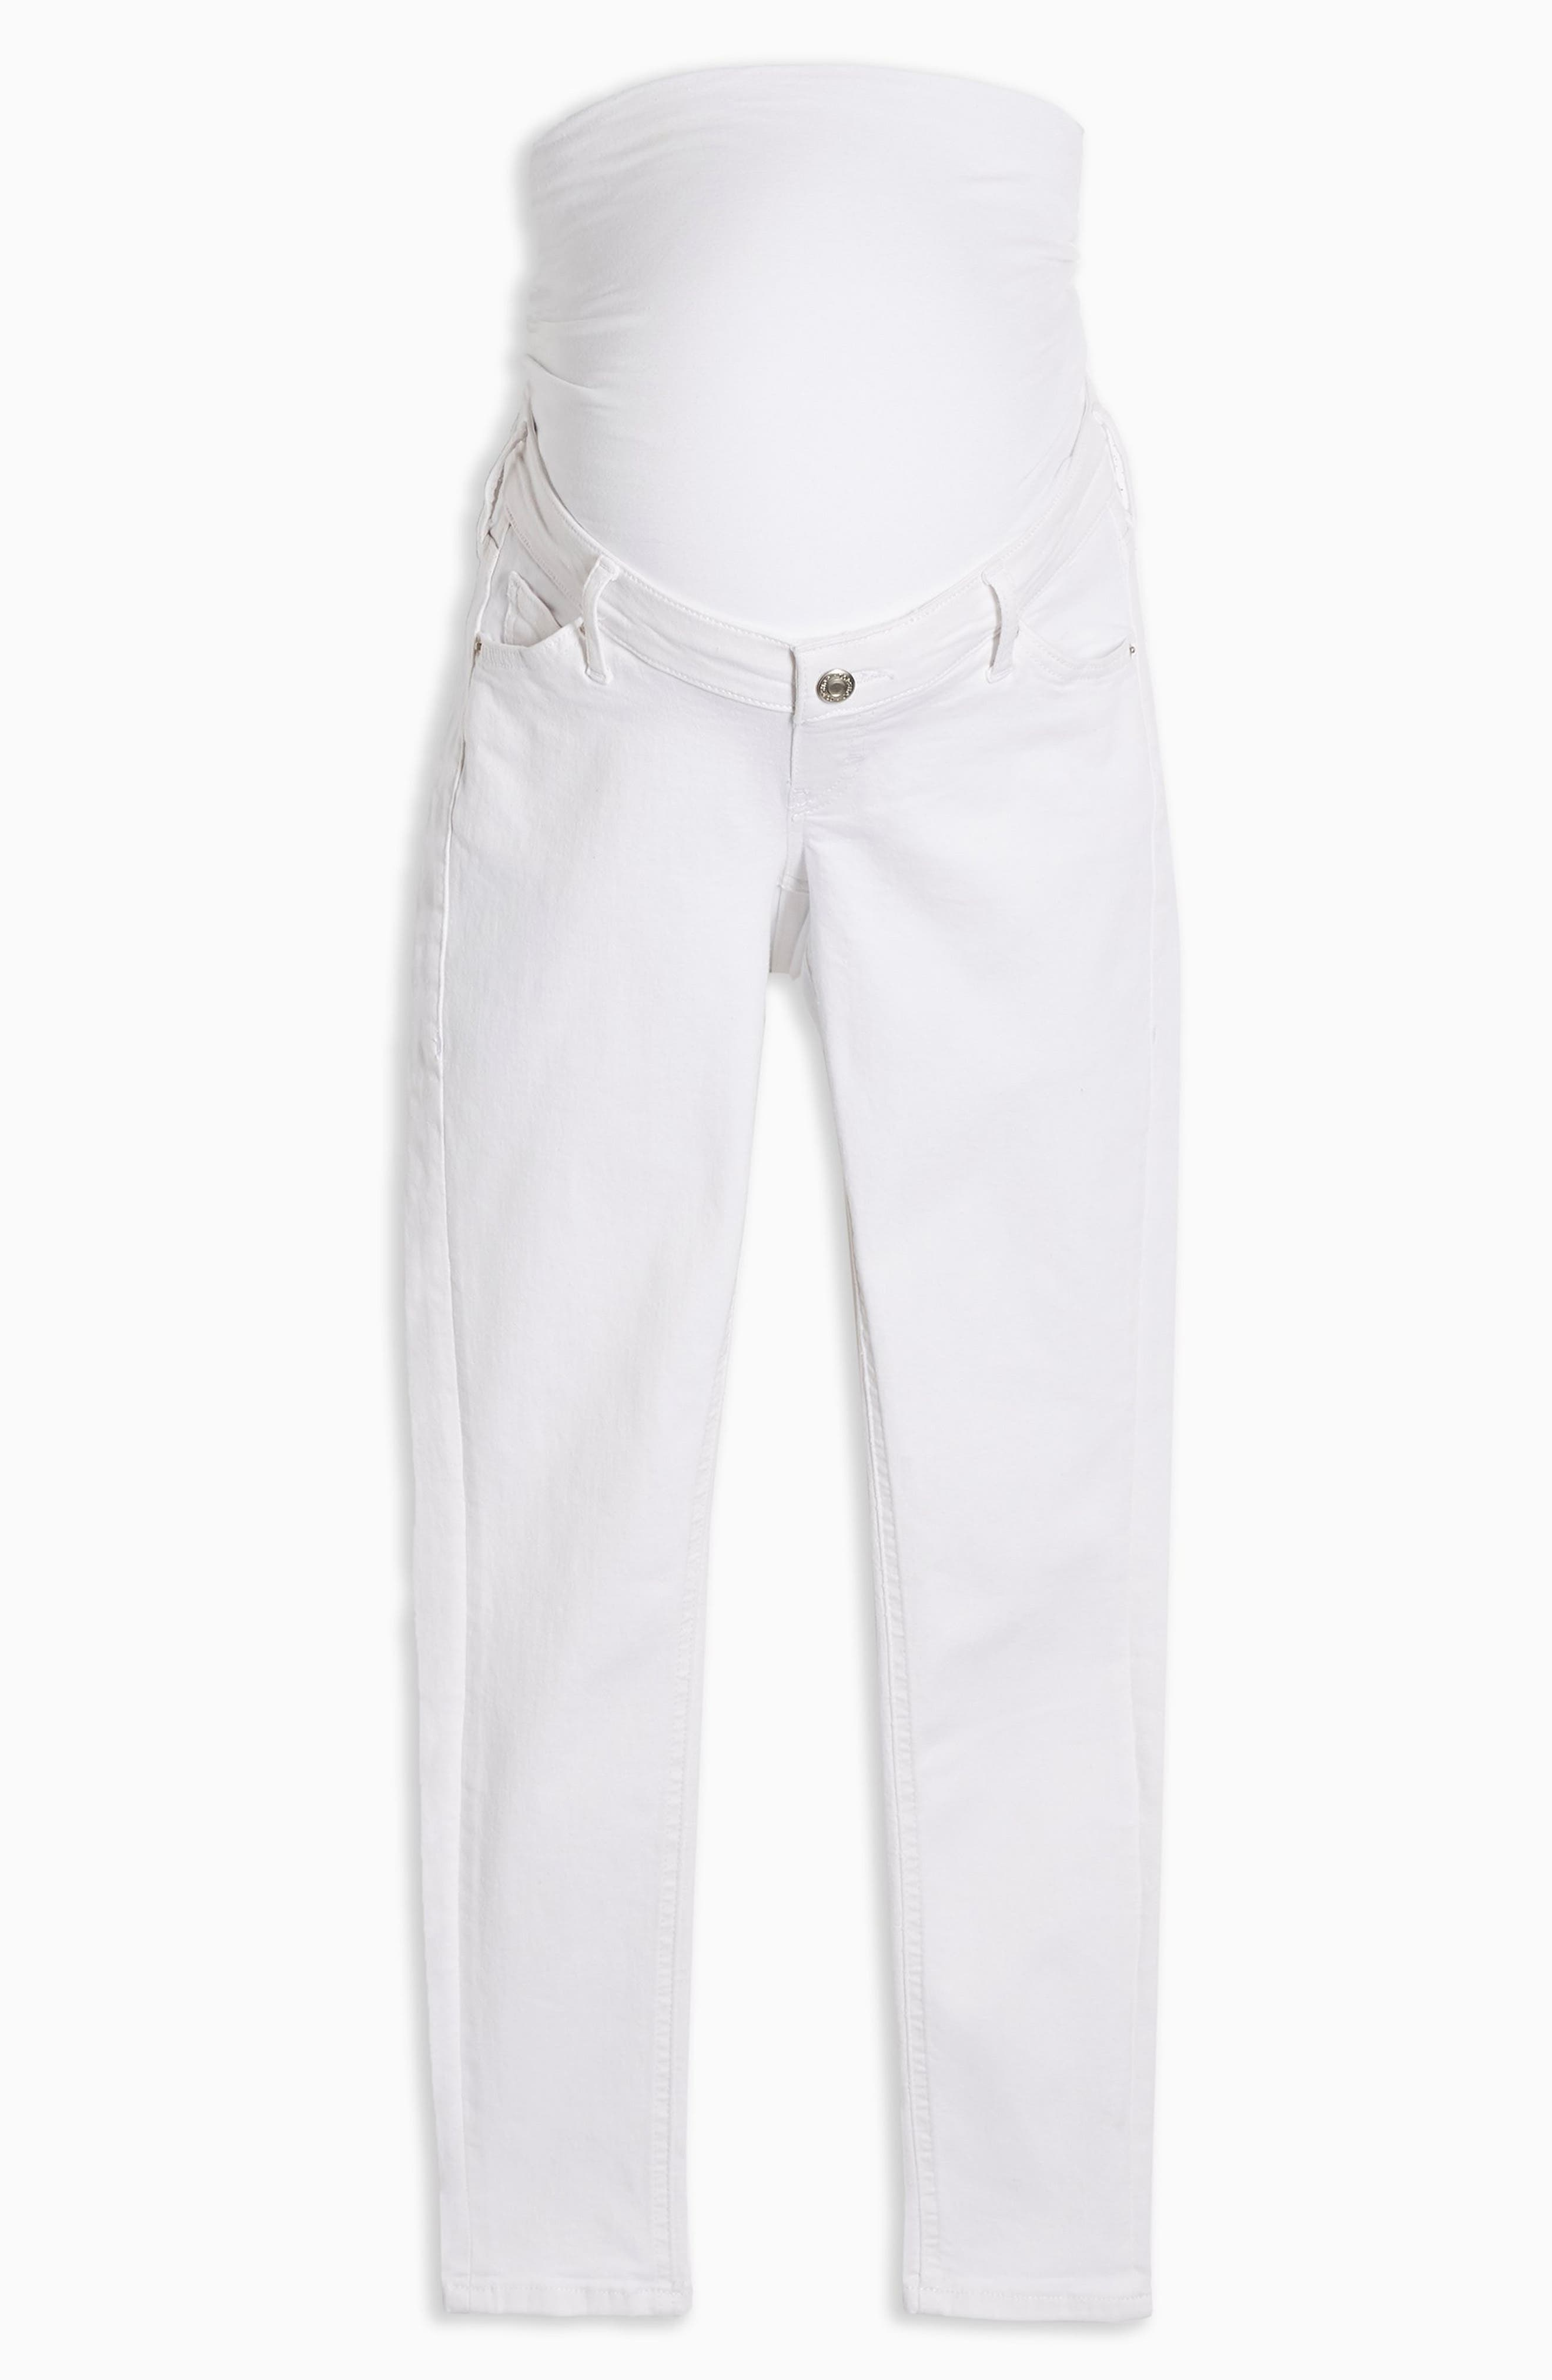 Topshop Jamie Over the Bump Maternity Jeans   Nordstrom